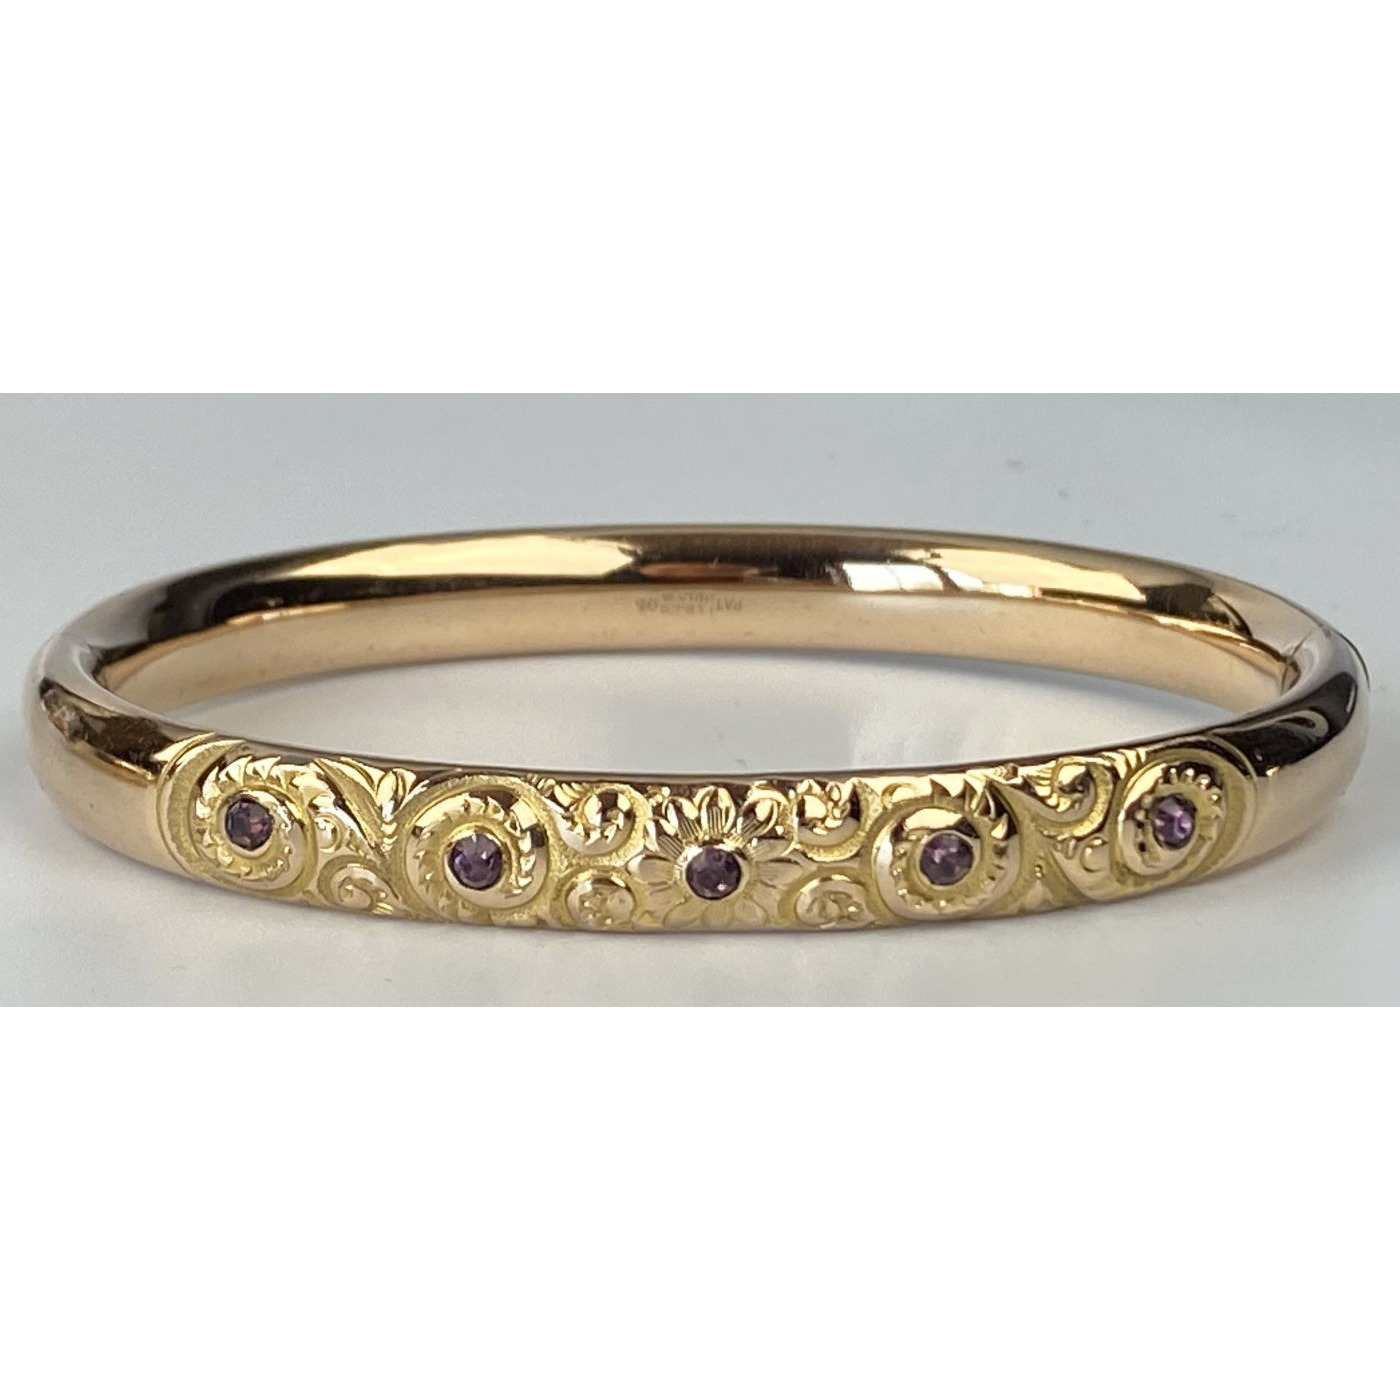 Stunning Deeply Engraved Engagement Bangle with Five Lavender Stones